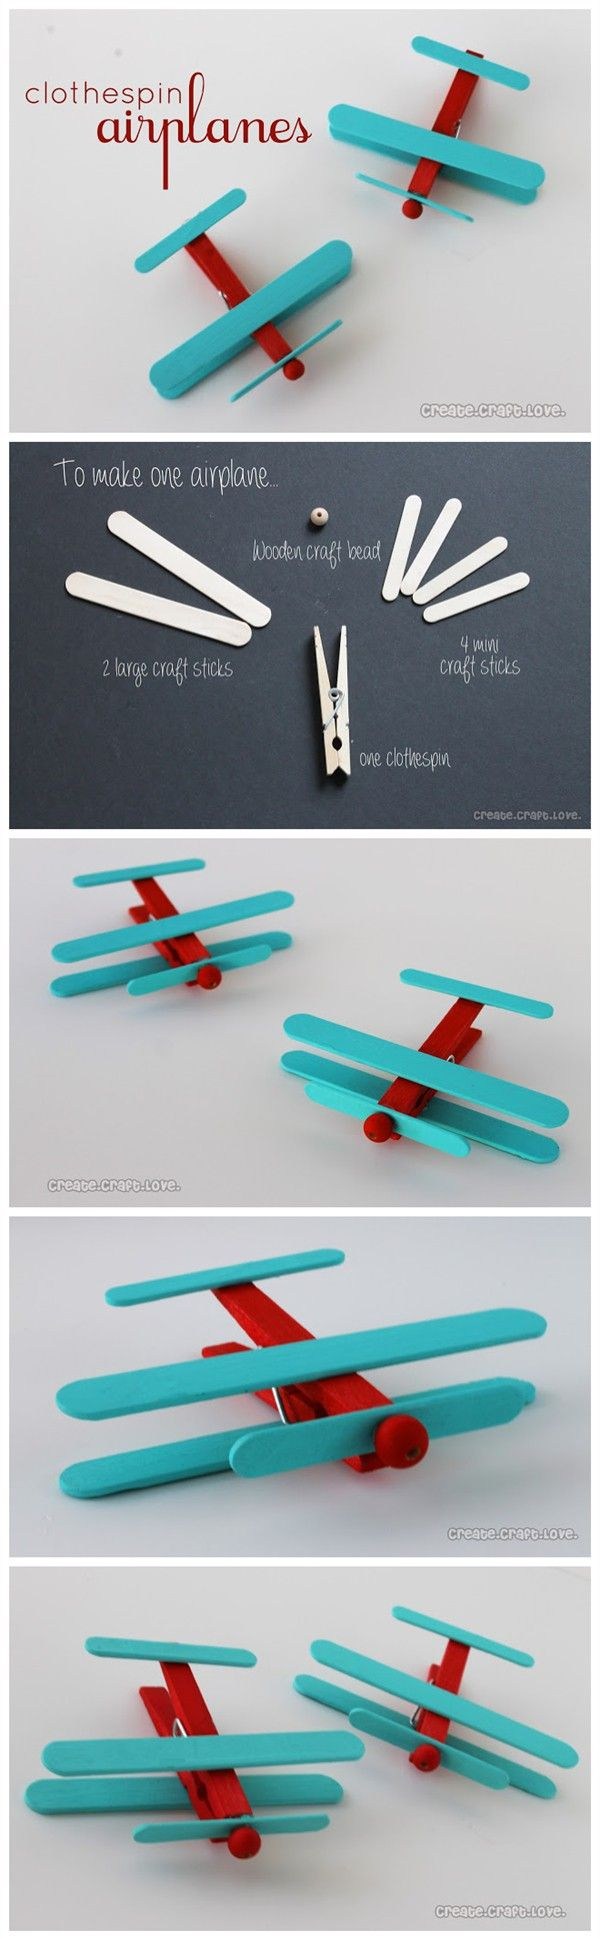 #Diy Clothespin #Airplanes #Tutorials